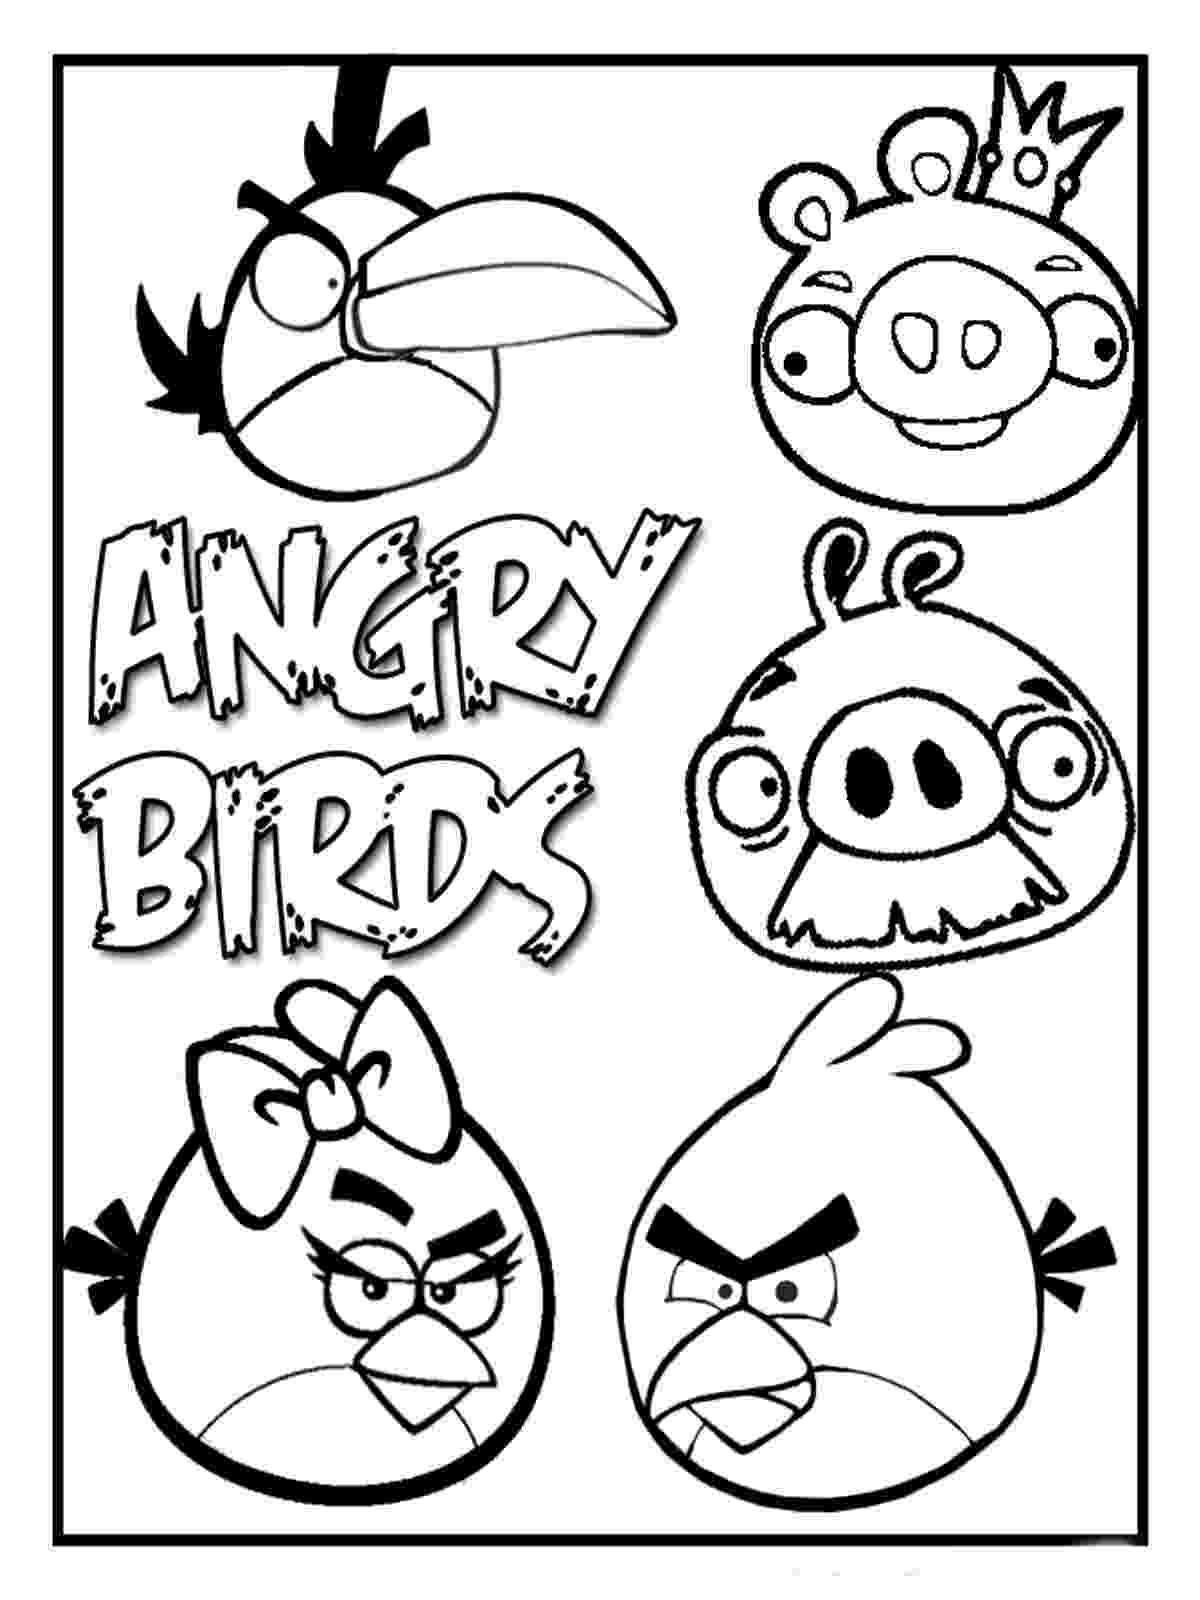 colouring pages angry birds go 15 best printable angry birds colouring pages for kids angry birds go pages colouring